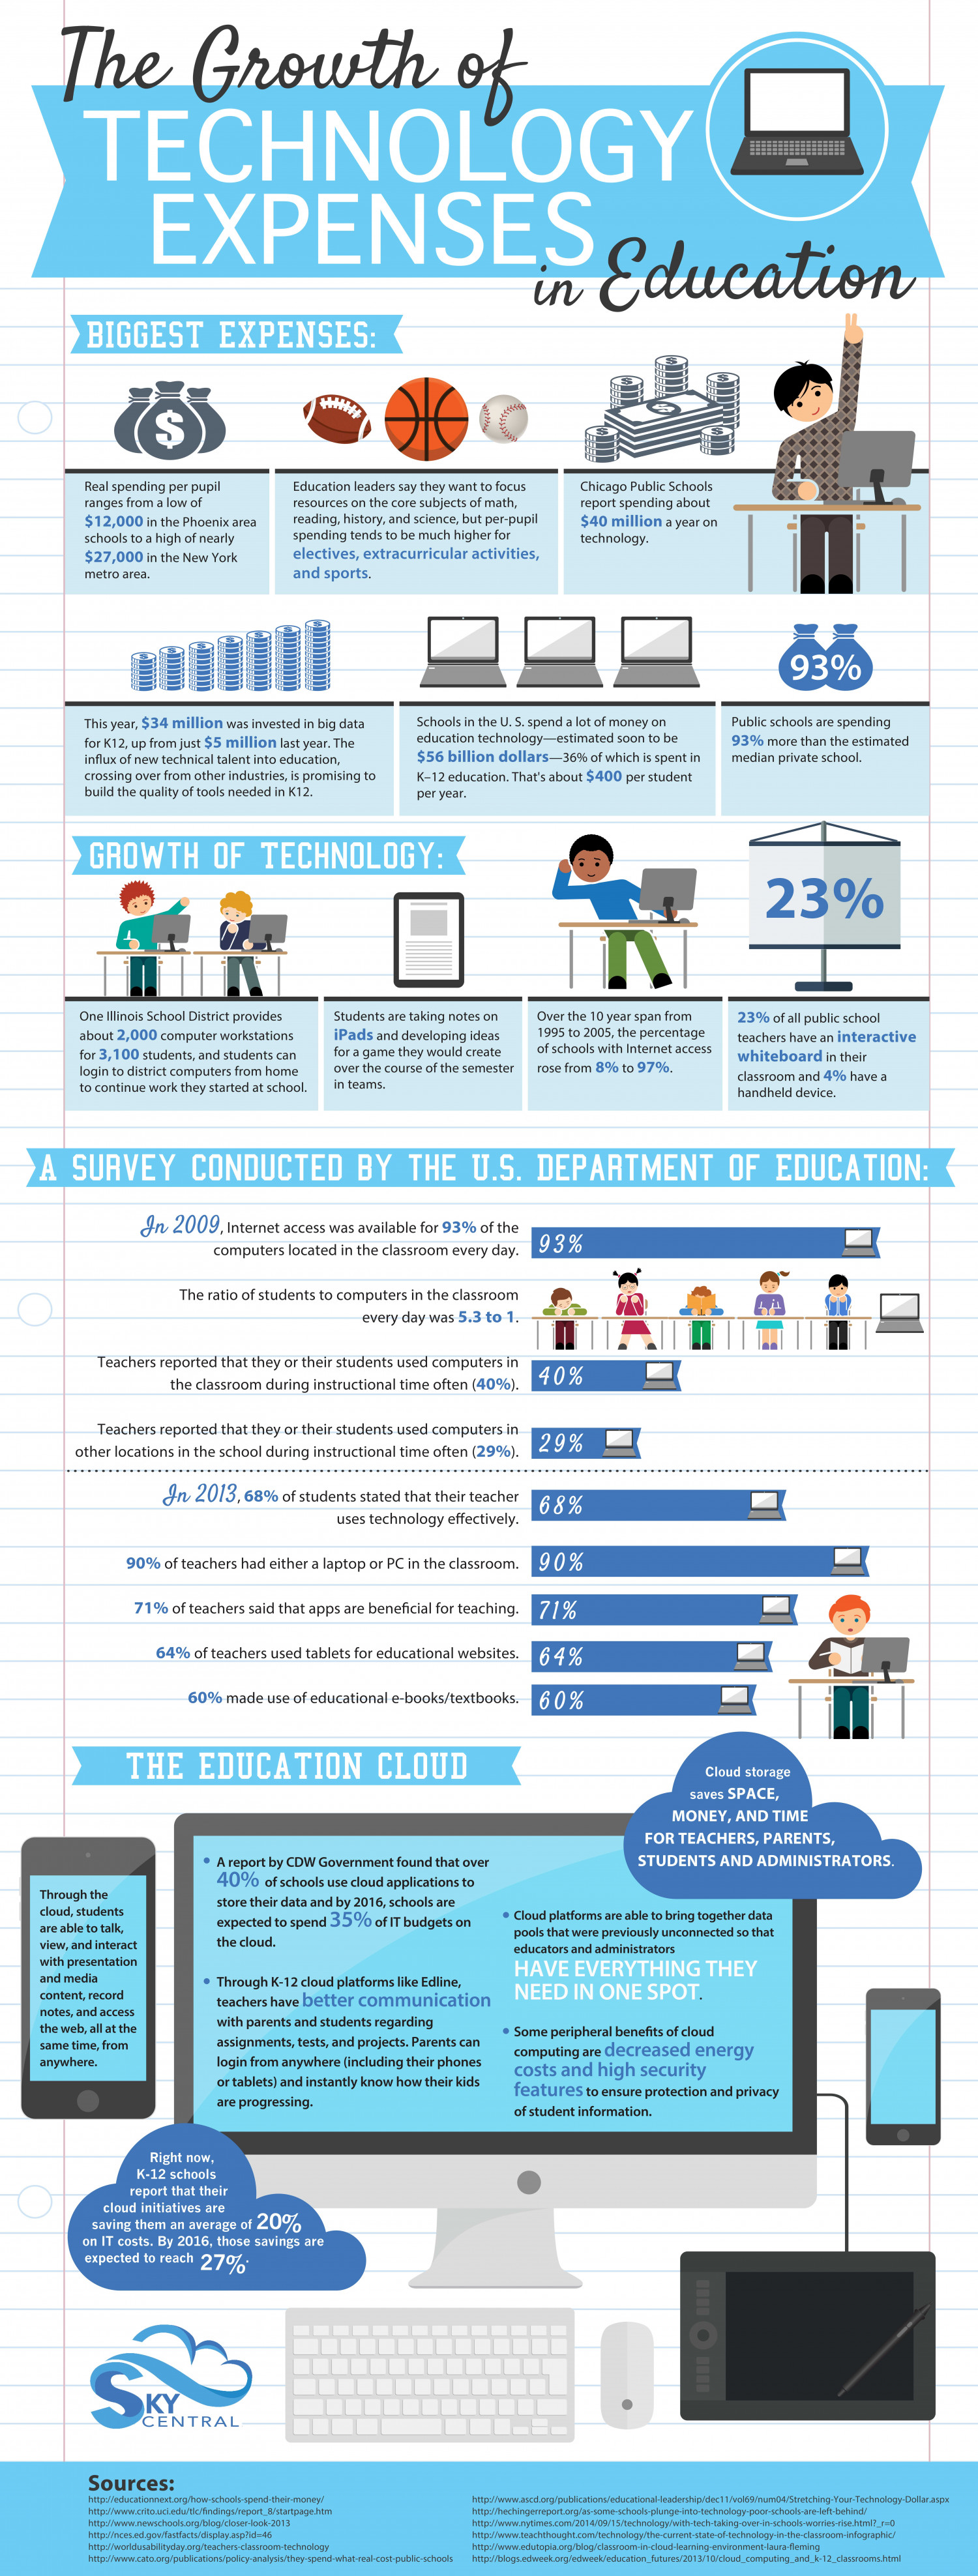 The Growth of Technology Expenses in Education Infographic